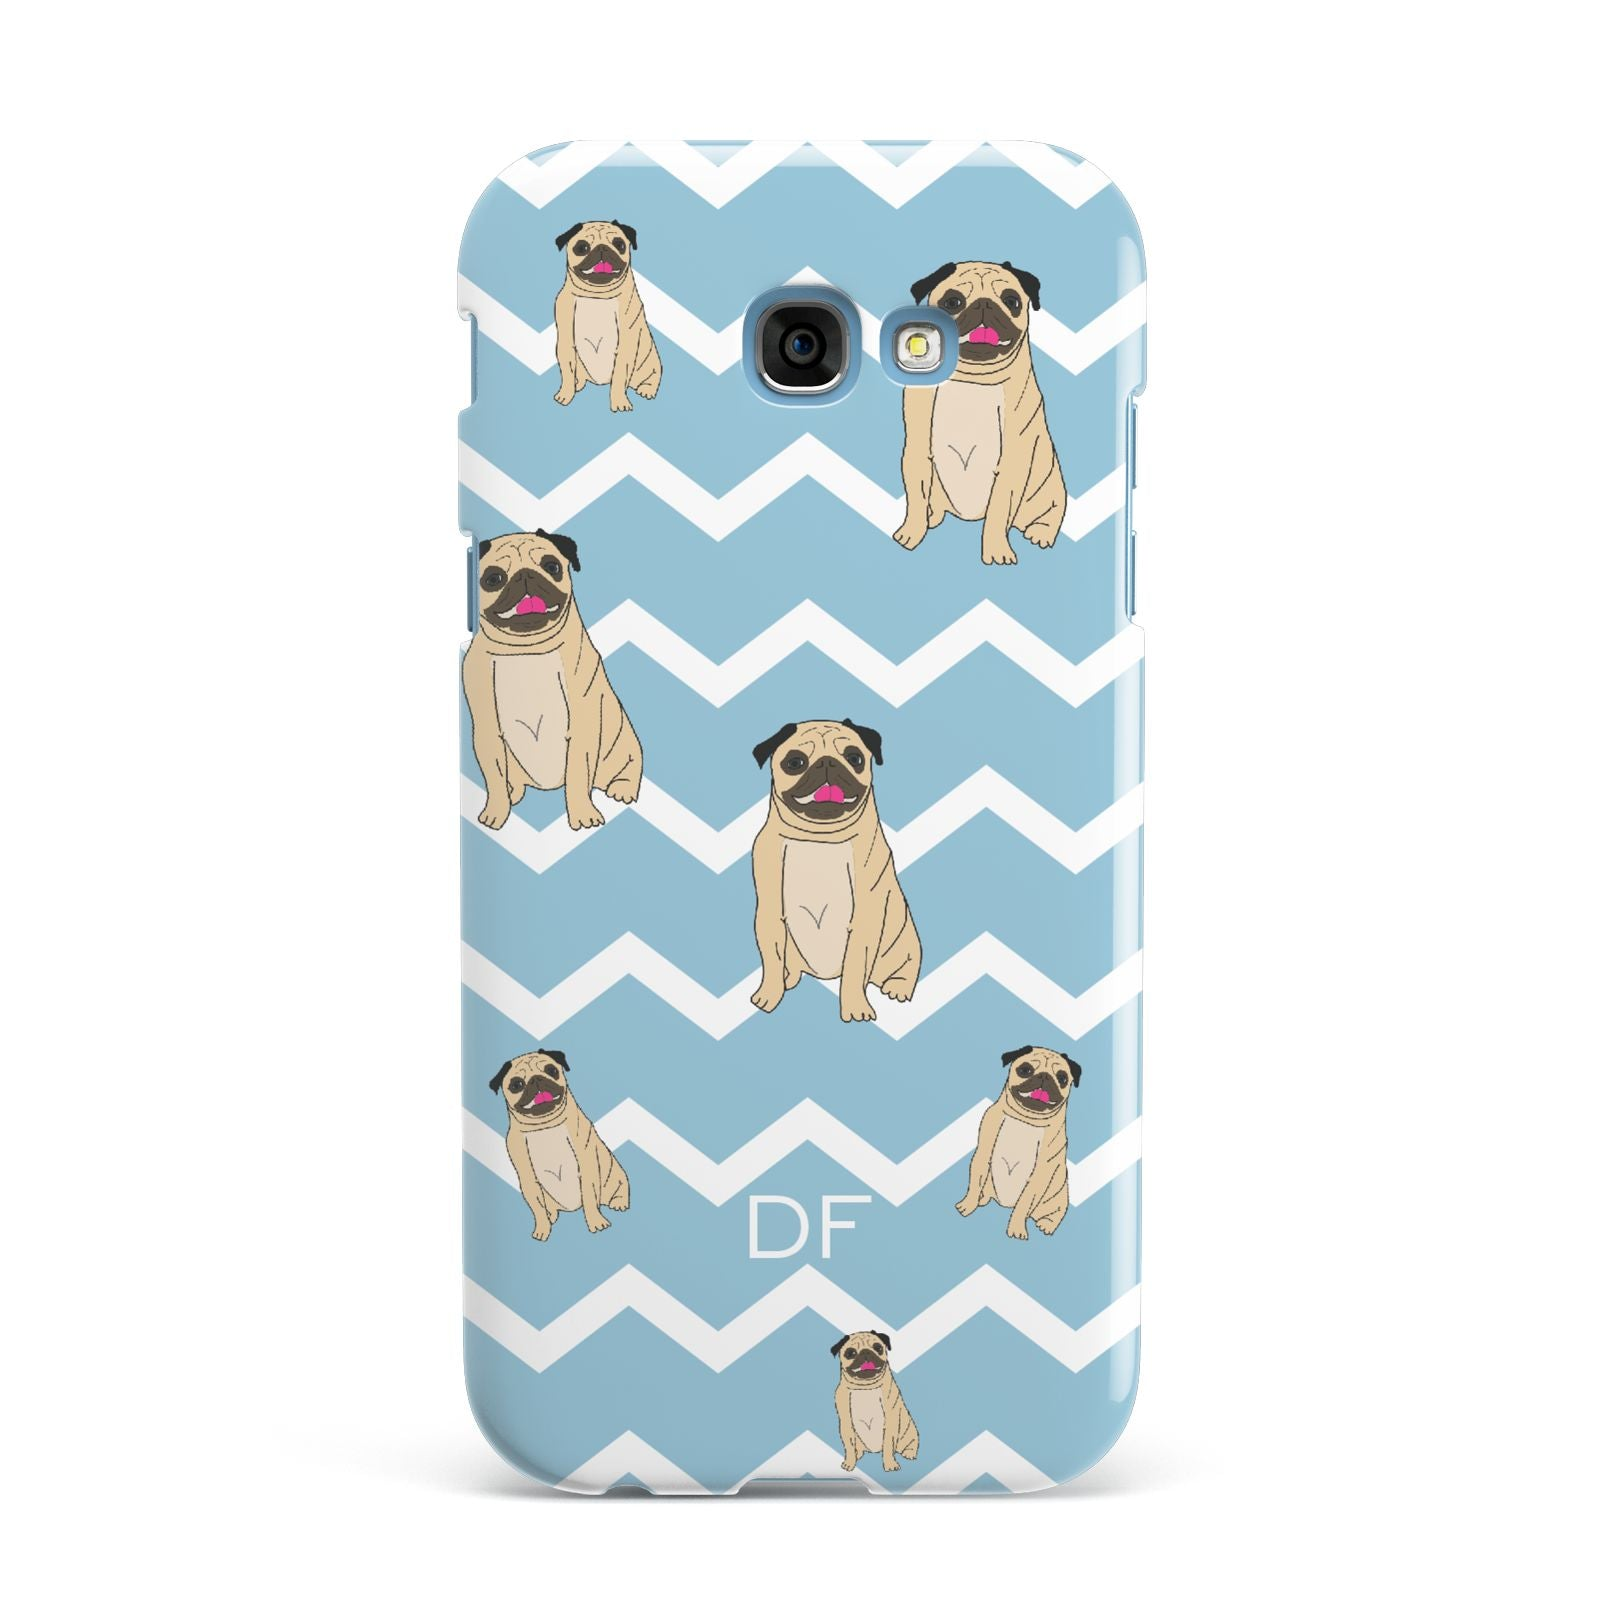 Personalised Pug Initials Samsung Galaxy A7 2017 Case